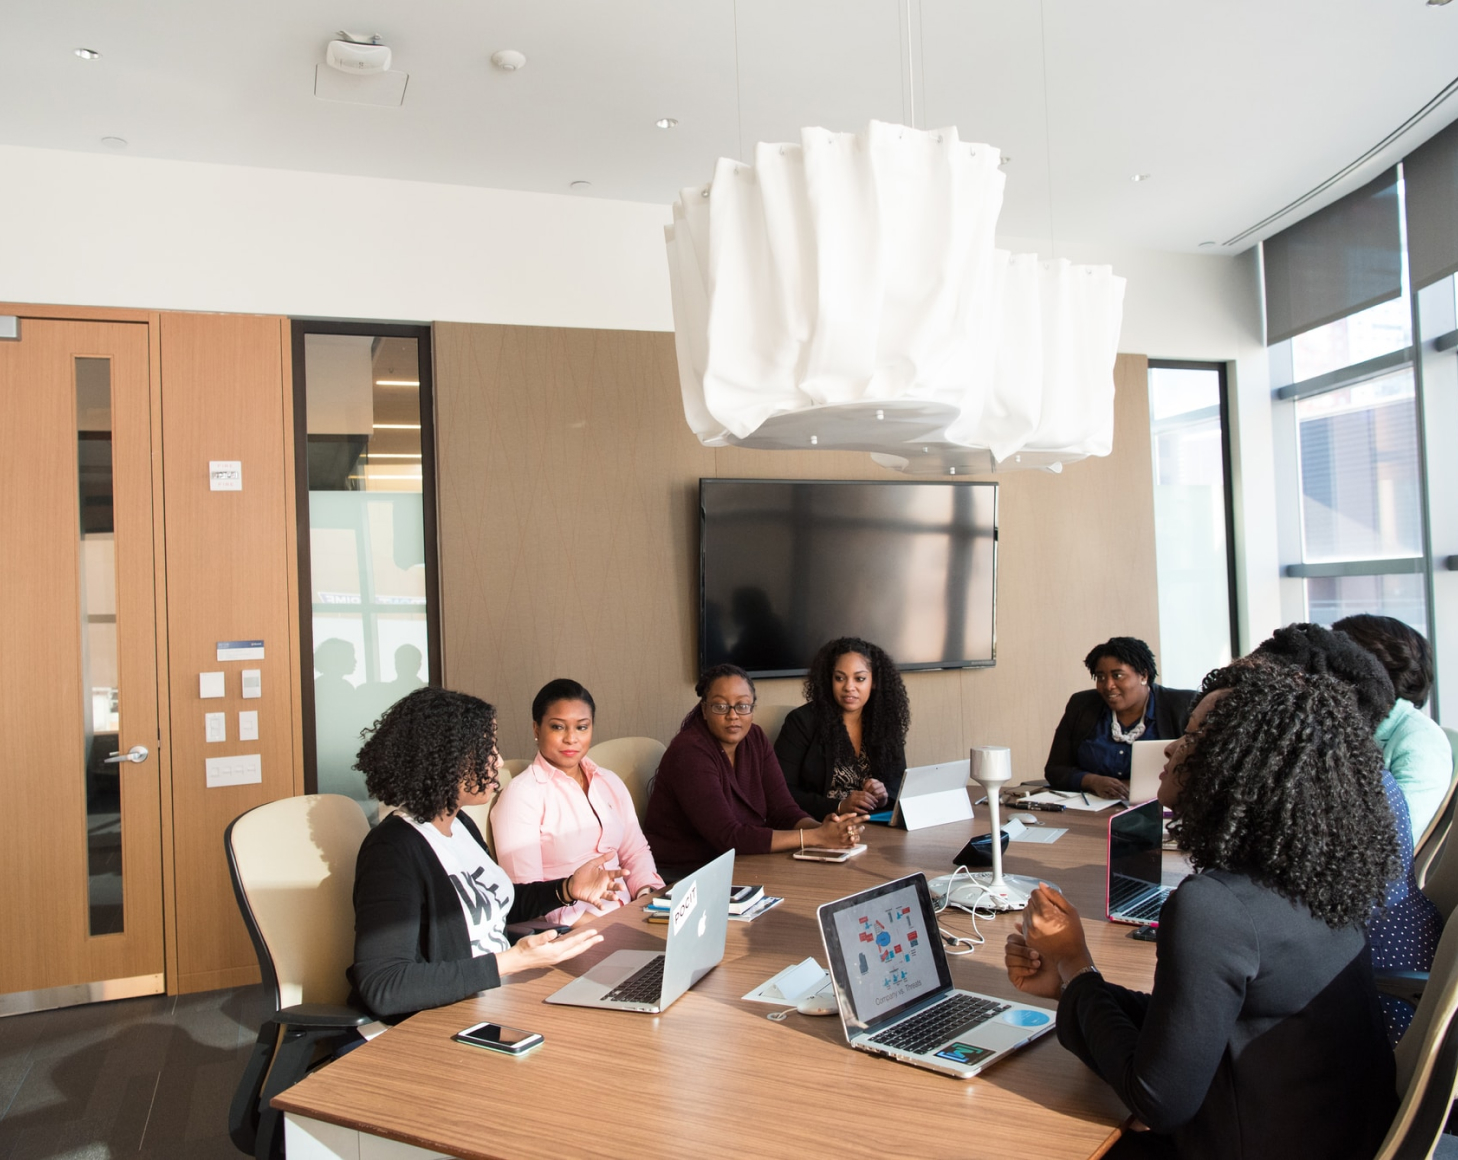 Business women meeting at a conference table